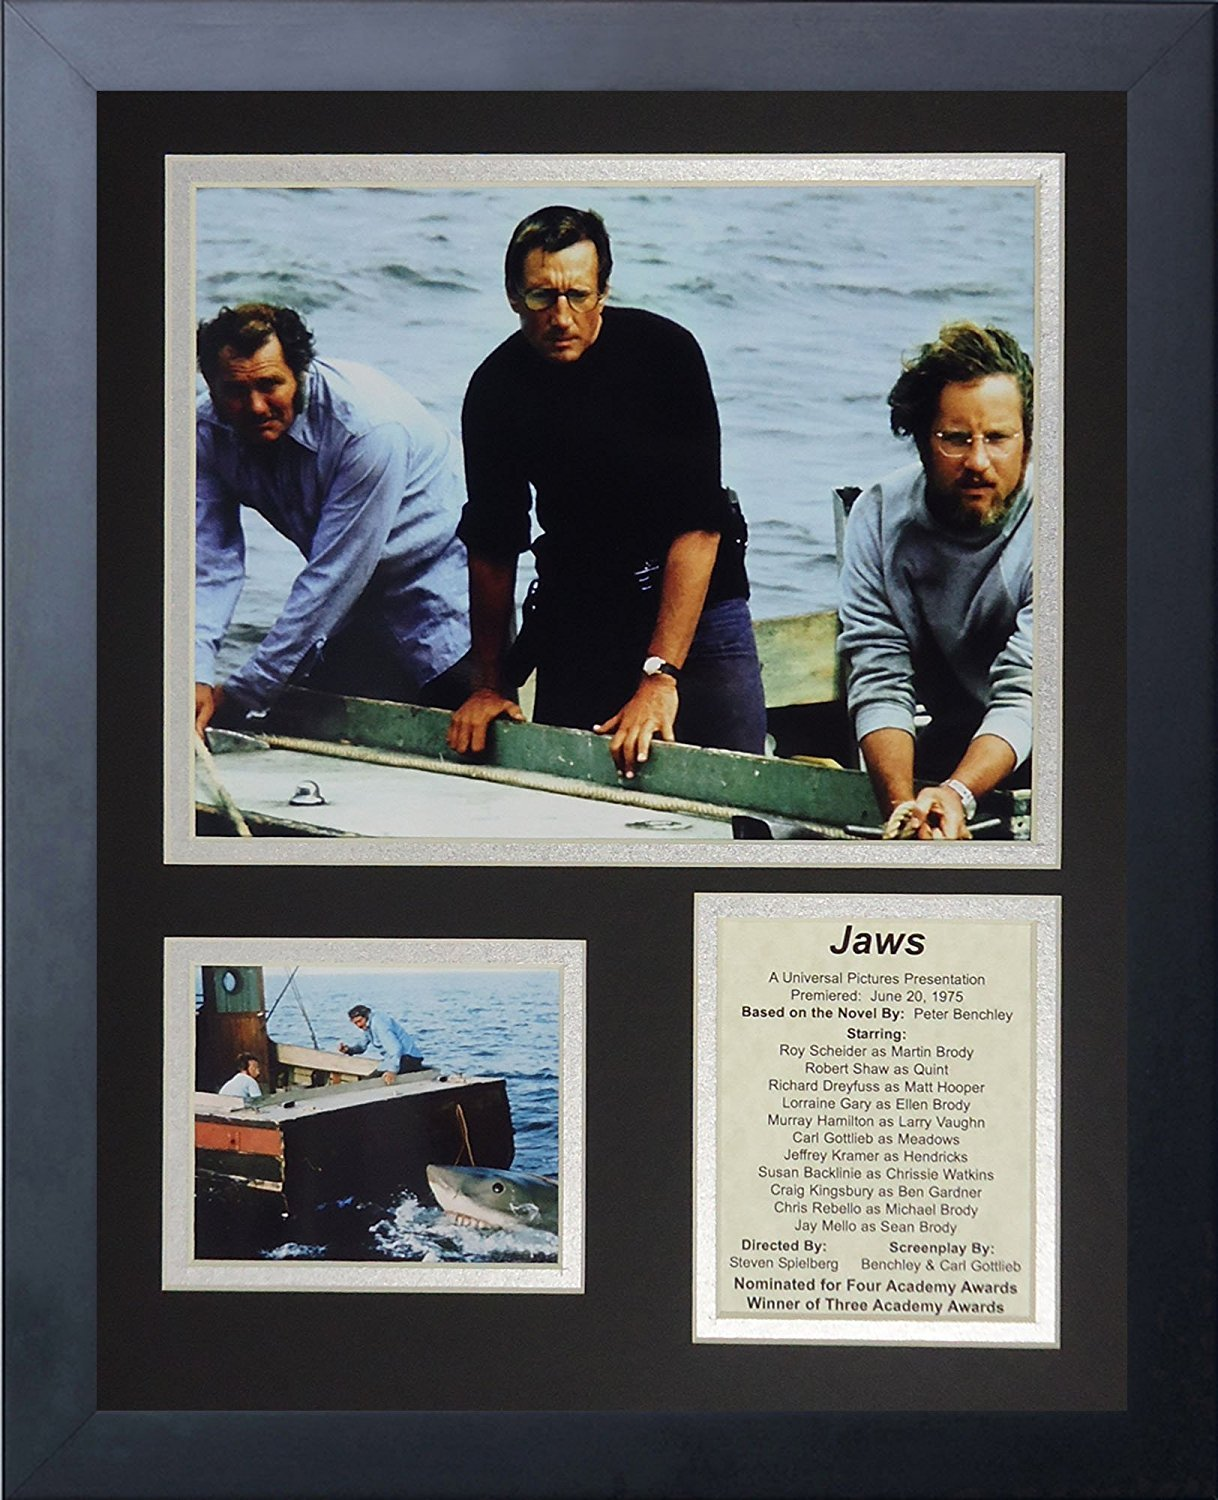 Legends Never Die Jaws Framed Photo Collage, 11 by 14-Inch 16087U